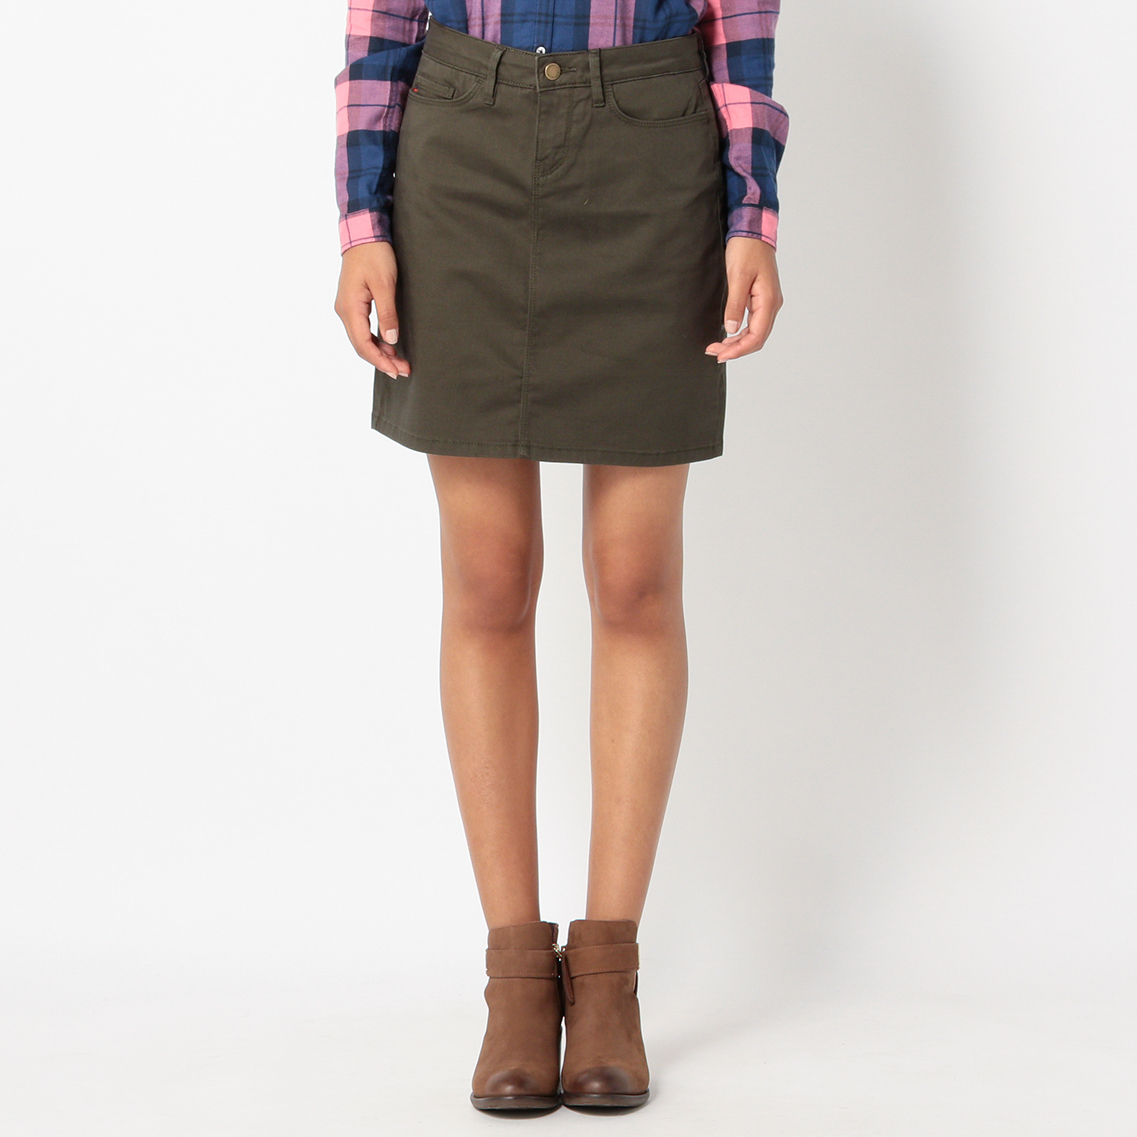 COTTON SATEEN 5 PKT SKIRT